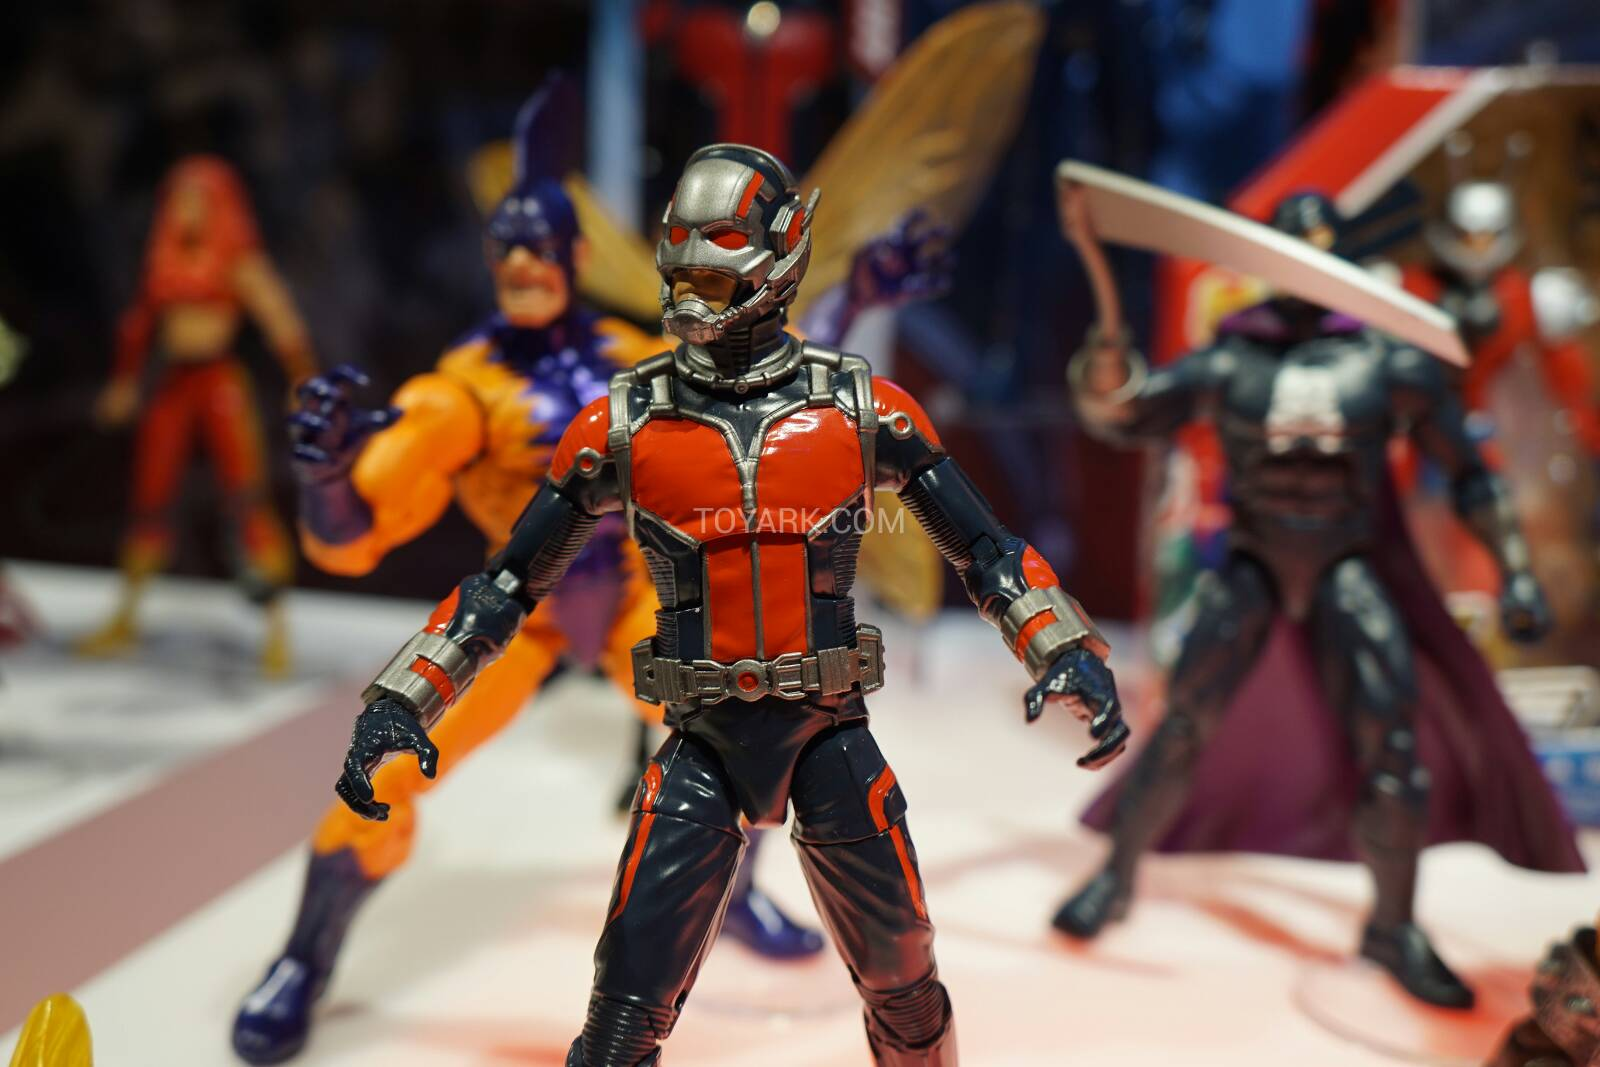 Toys From Hasbro : Hasbro ant man toys from toy fair the toyark news